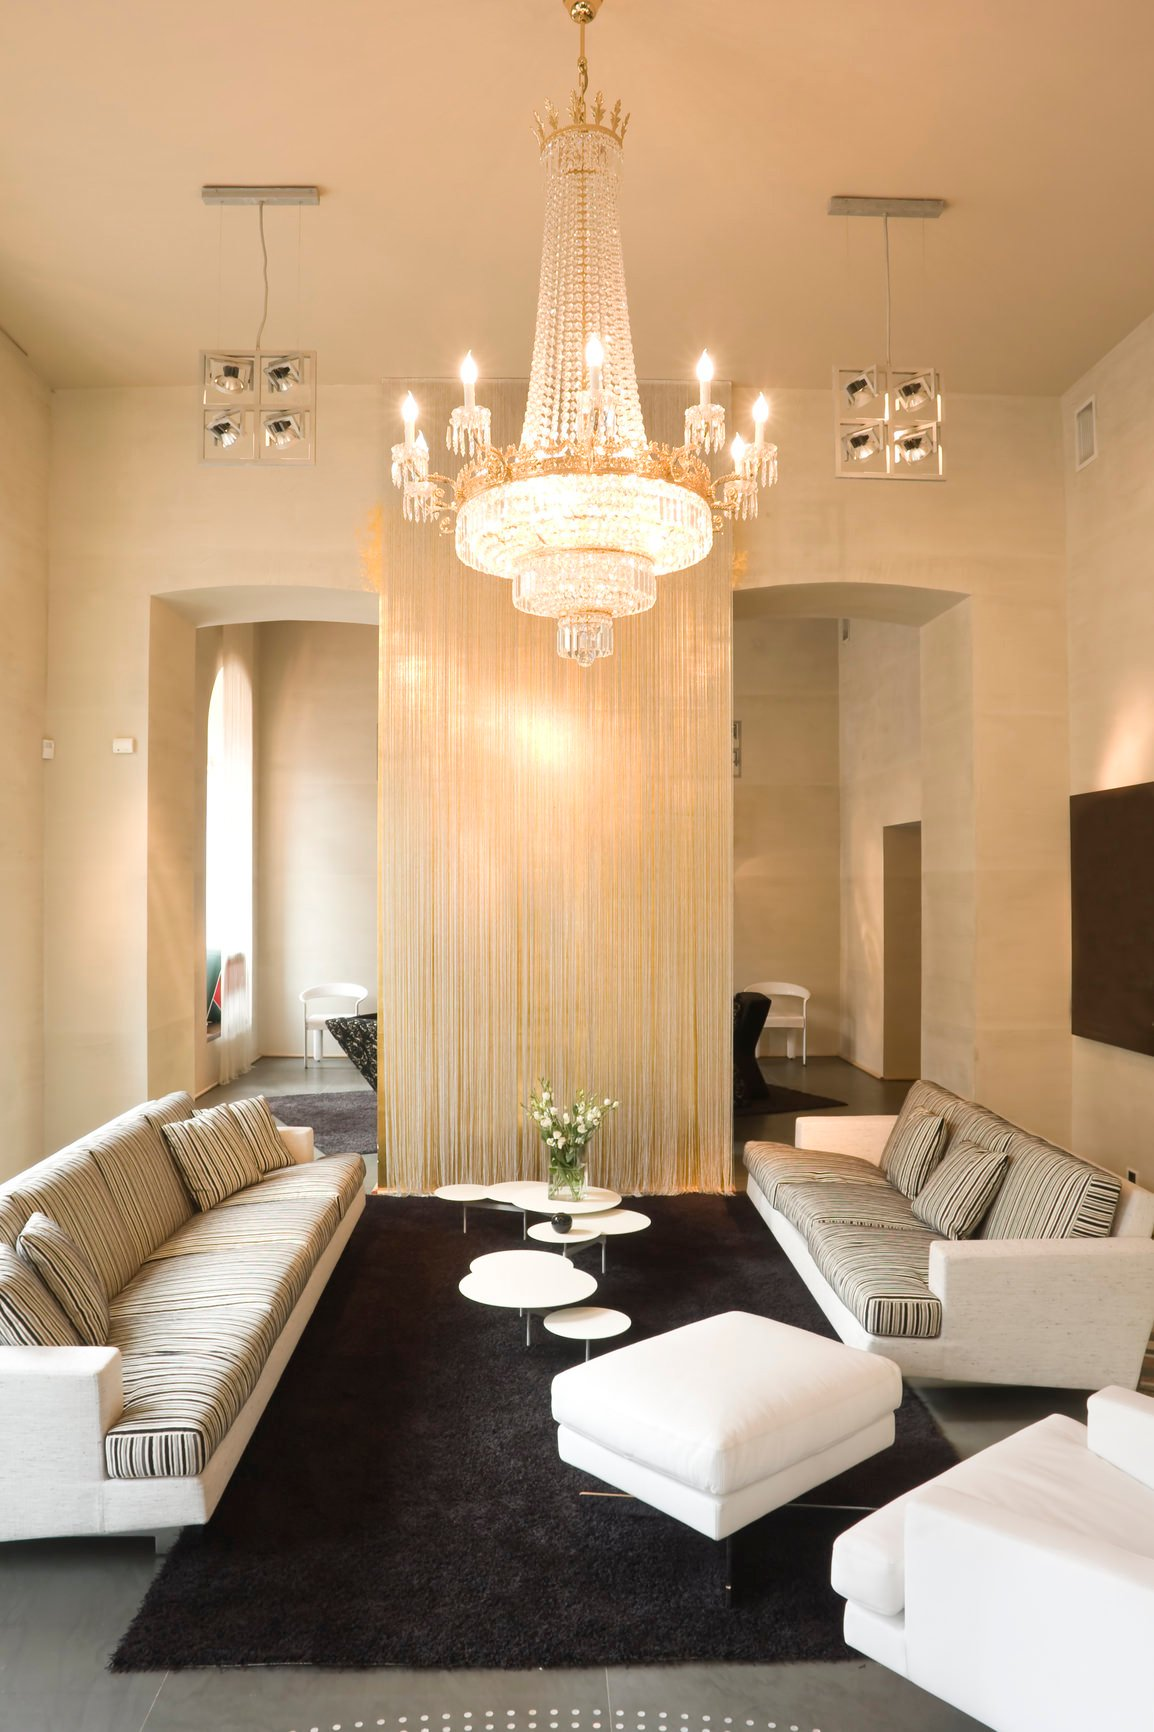 A formal living space featuring an elegant grand chandelier lighting up the space. The room offers a cozy sofa set along with a stylish white center table.